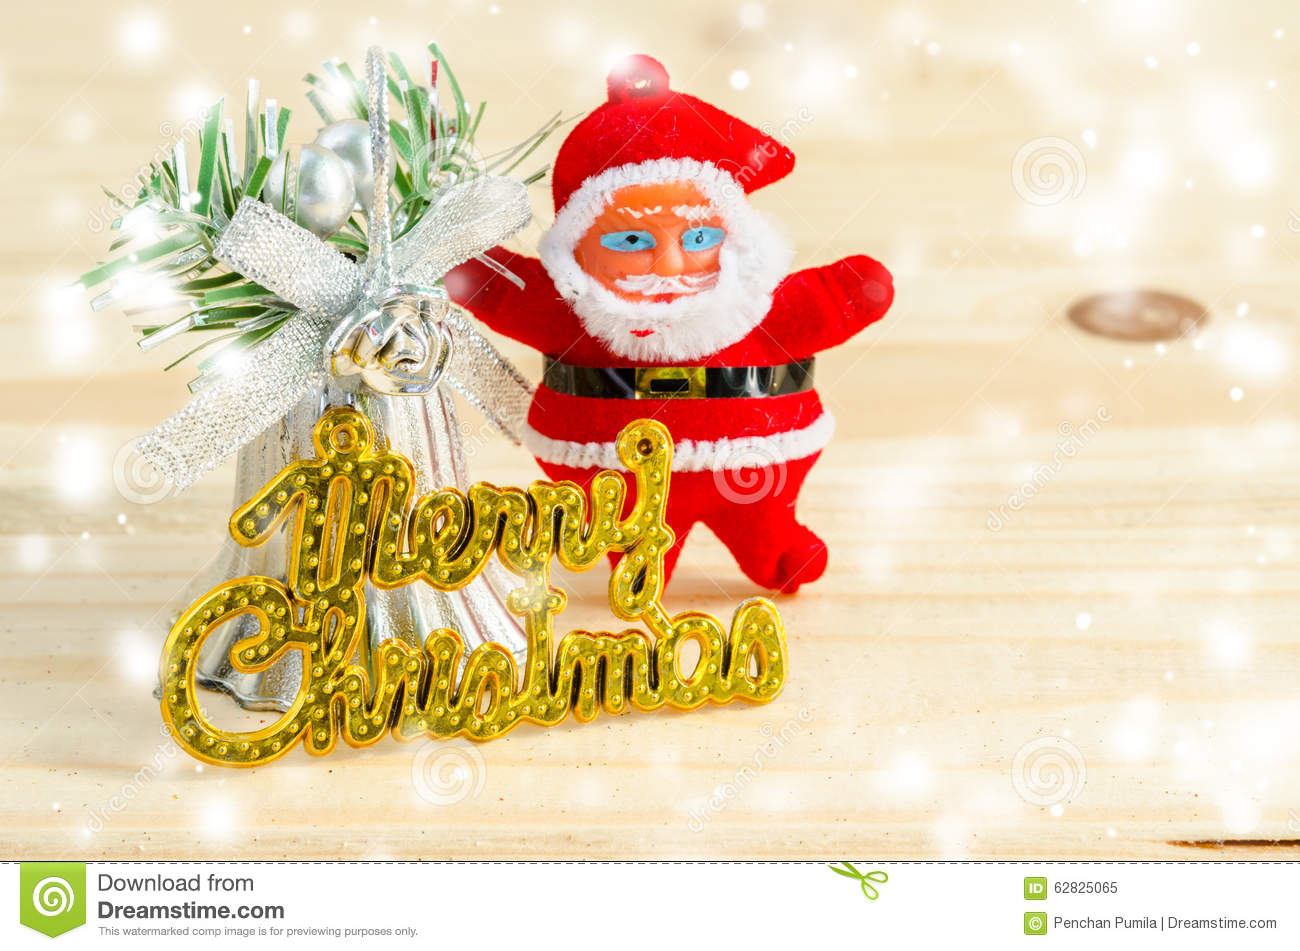 xmas day: merry christmas wording and santa doll stock image - image